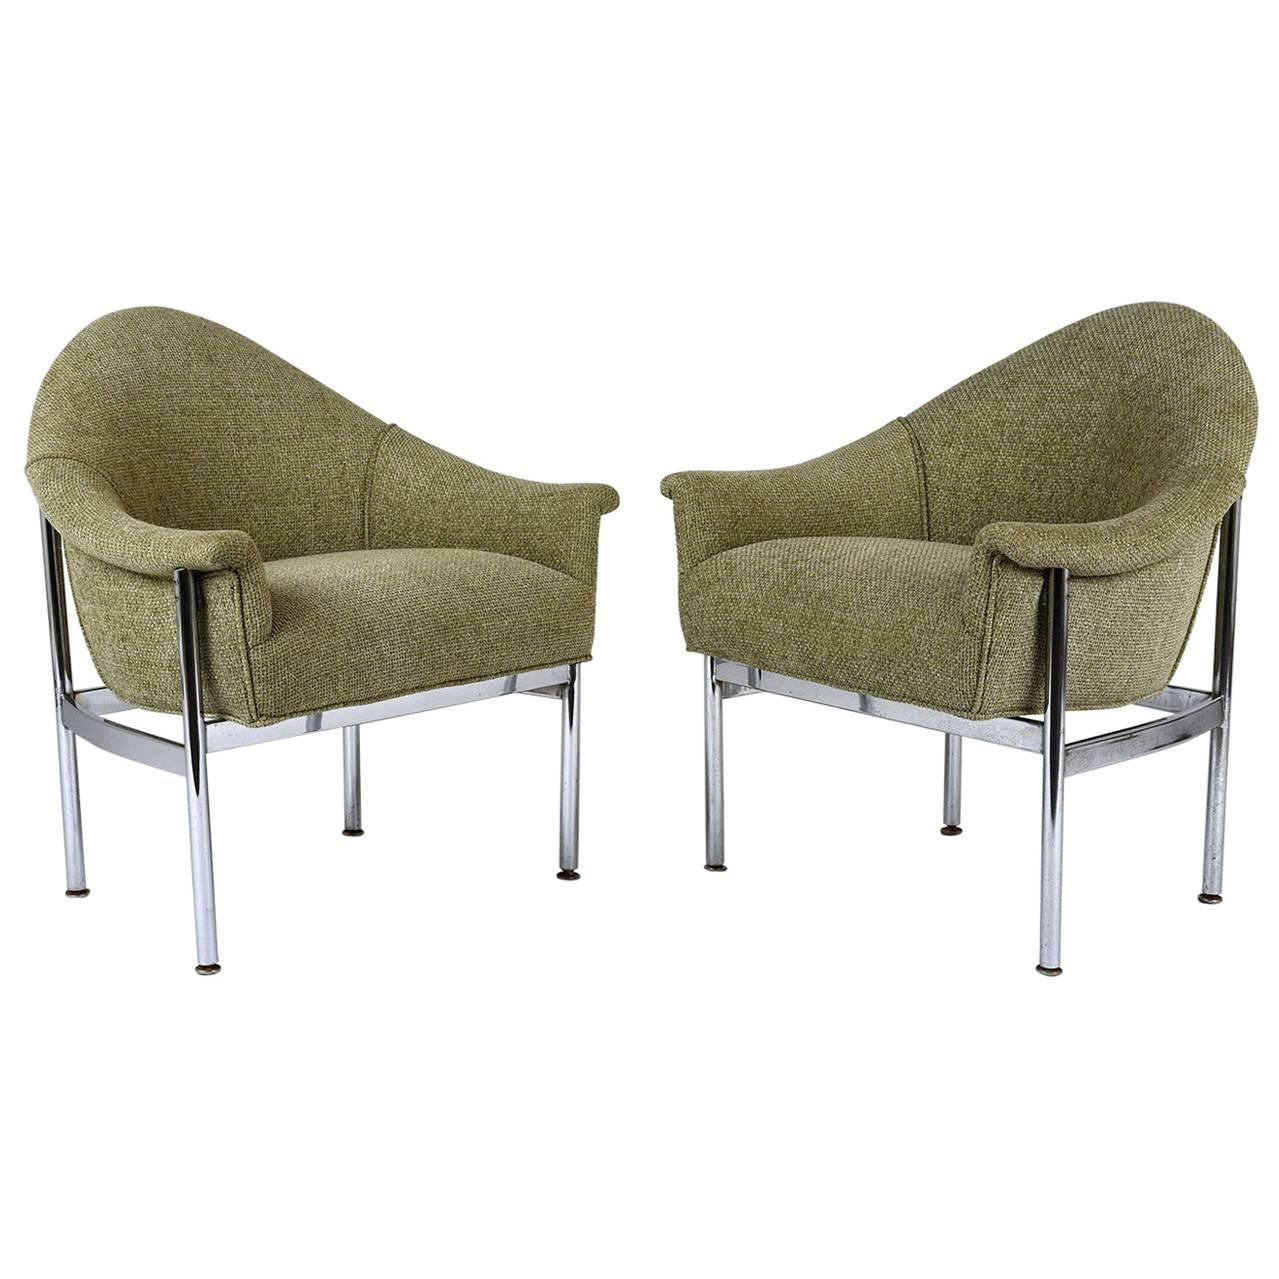 contemporary lounge chairs how to make easy chair covers for wedding pair of mid century modern sale at 1stdibs